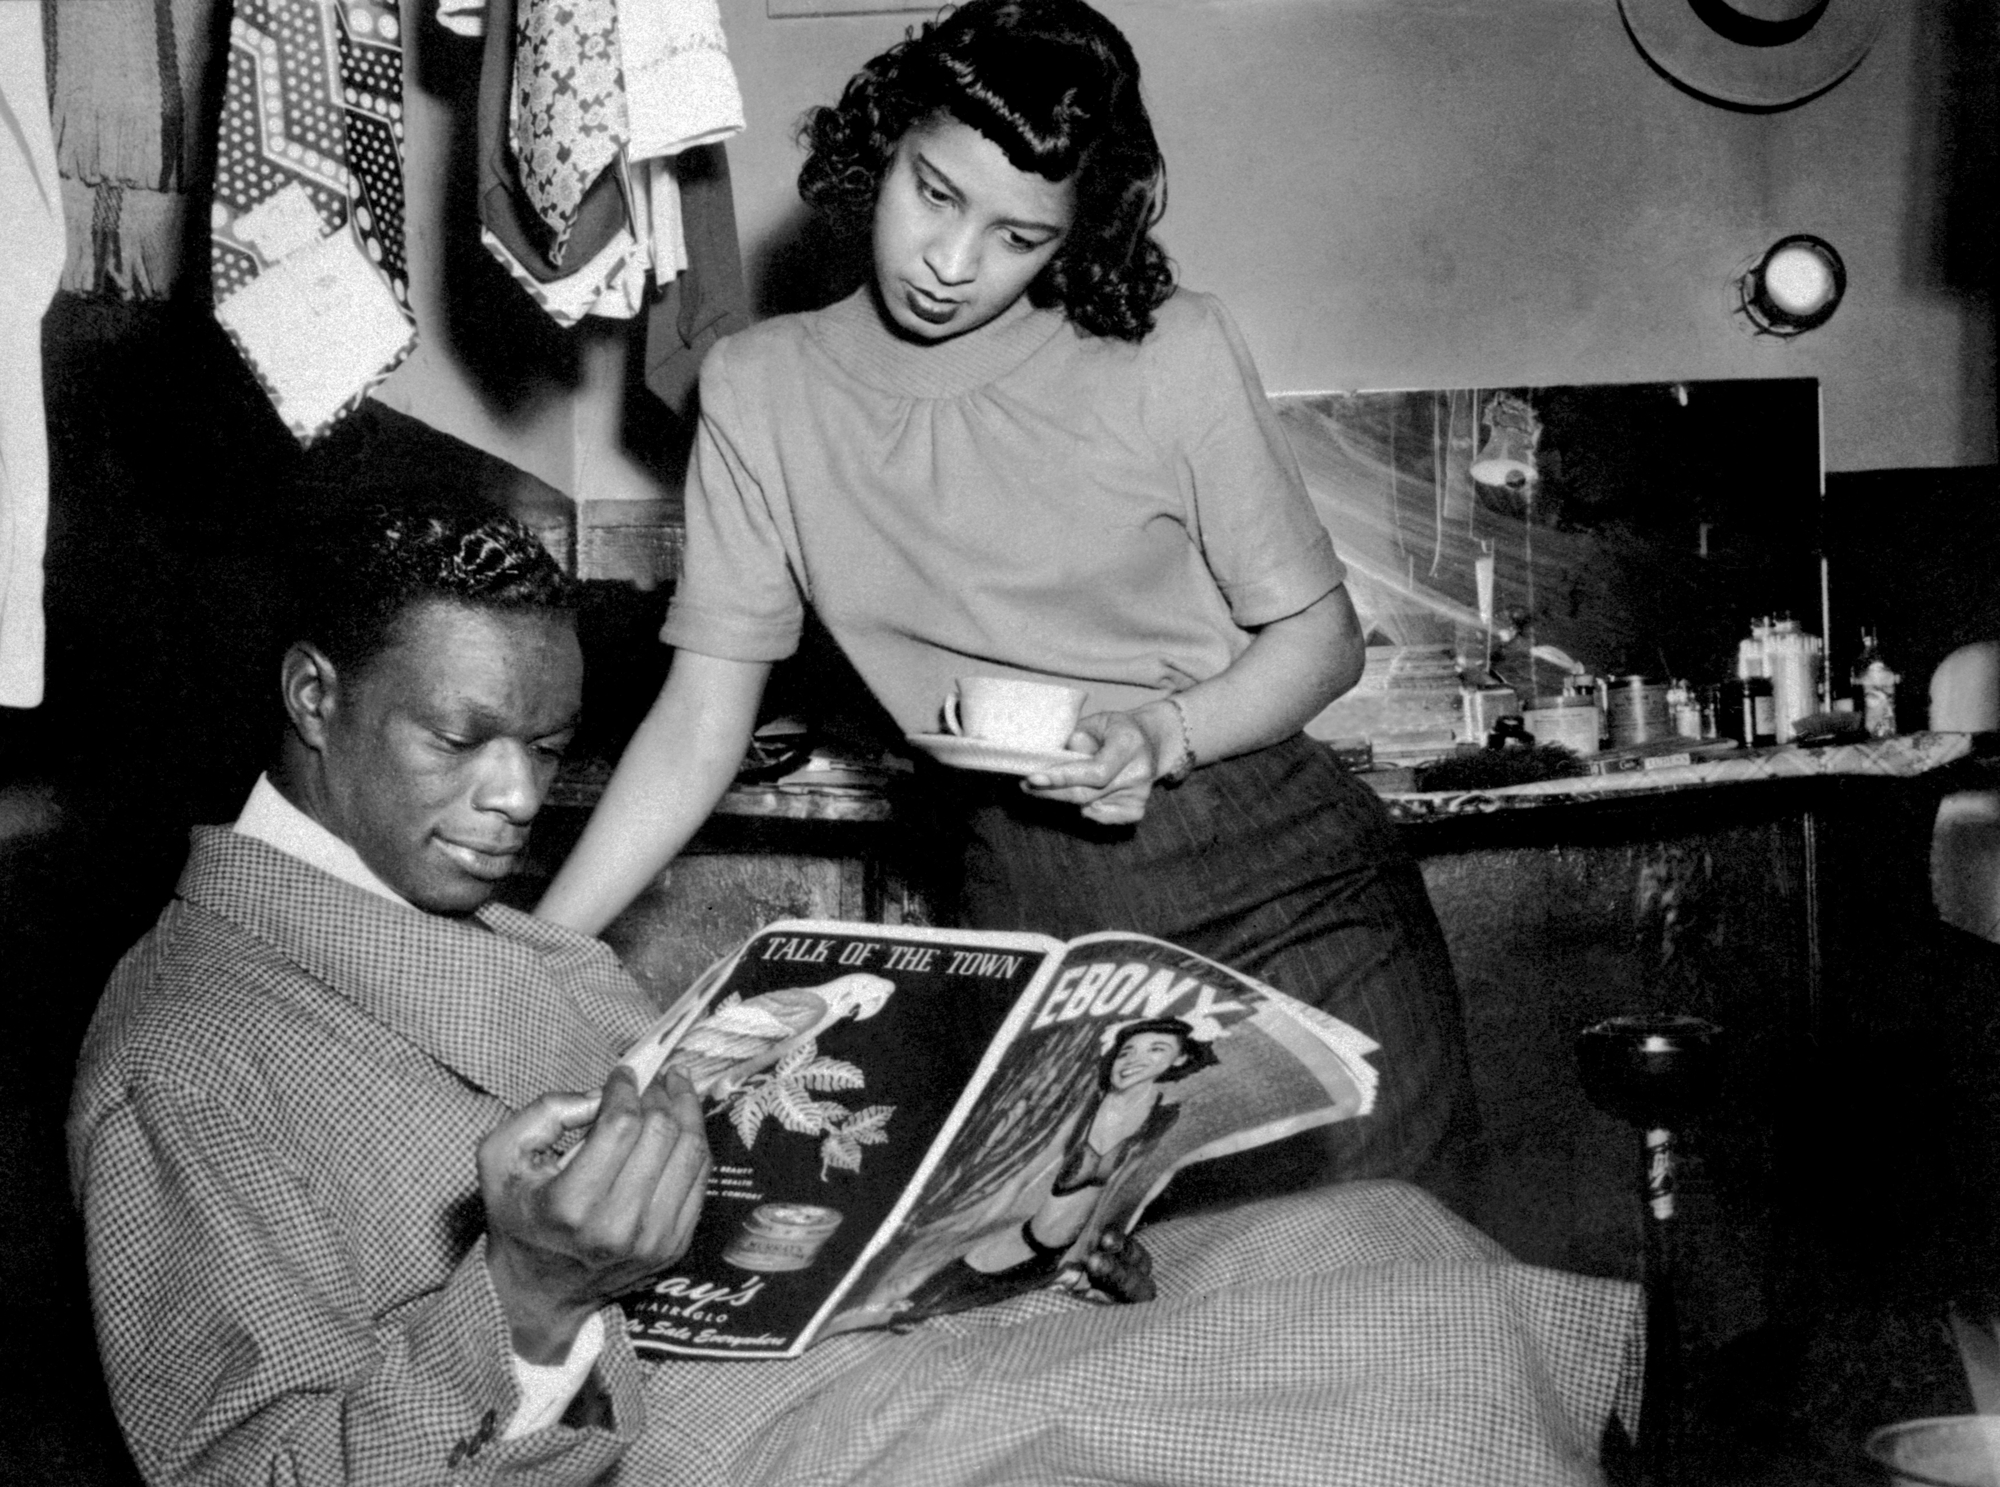 nat king Cole at the apollo theater